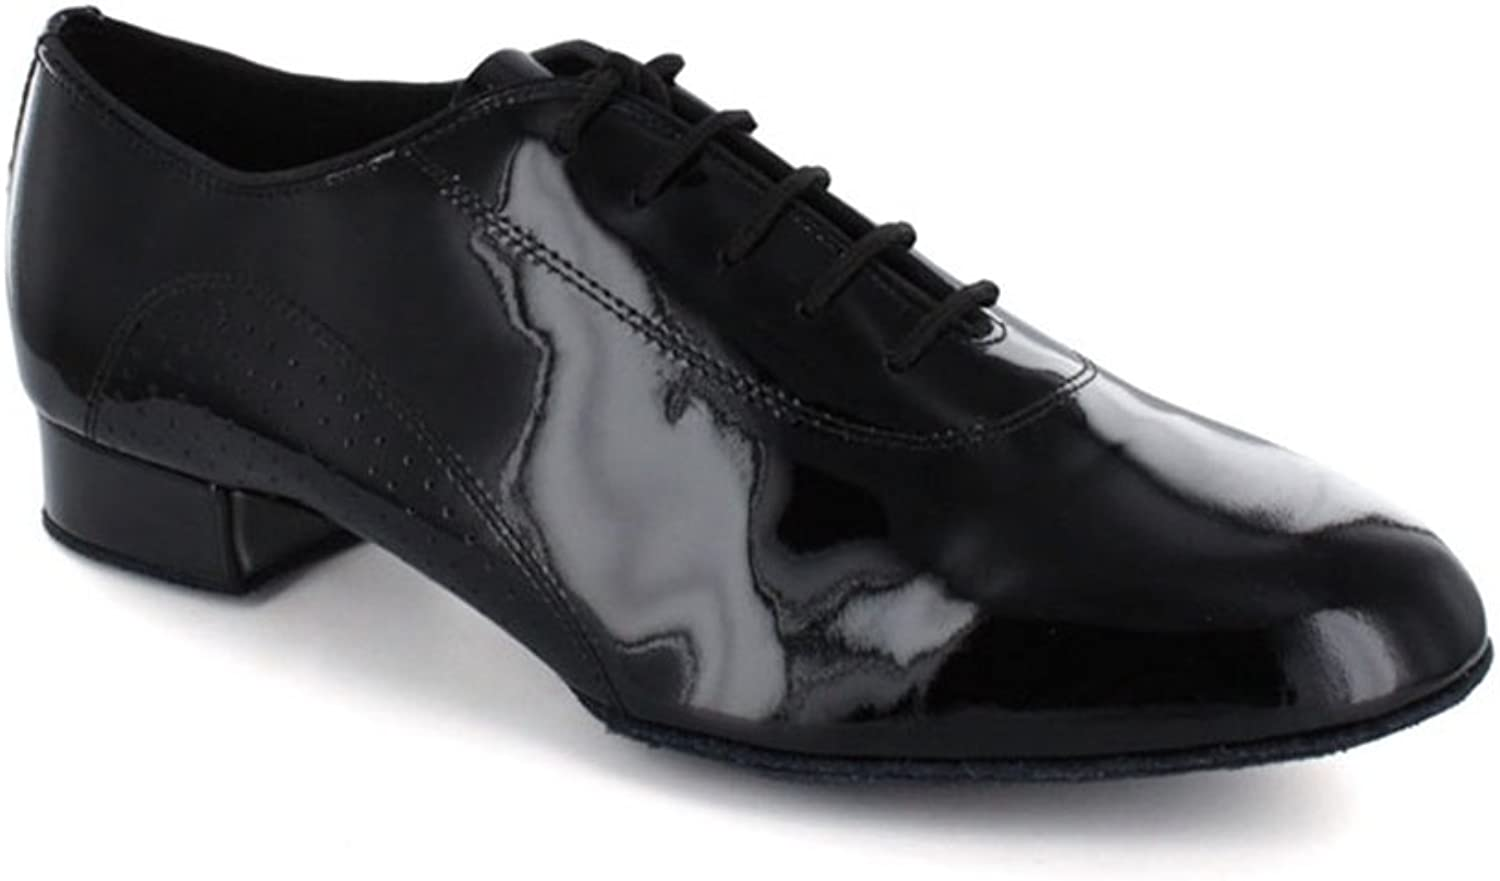 TDA Men's Casual Laceup Patent Leather Ballroom Latin Dance shoes